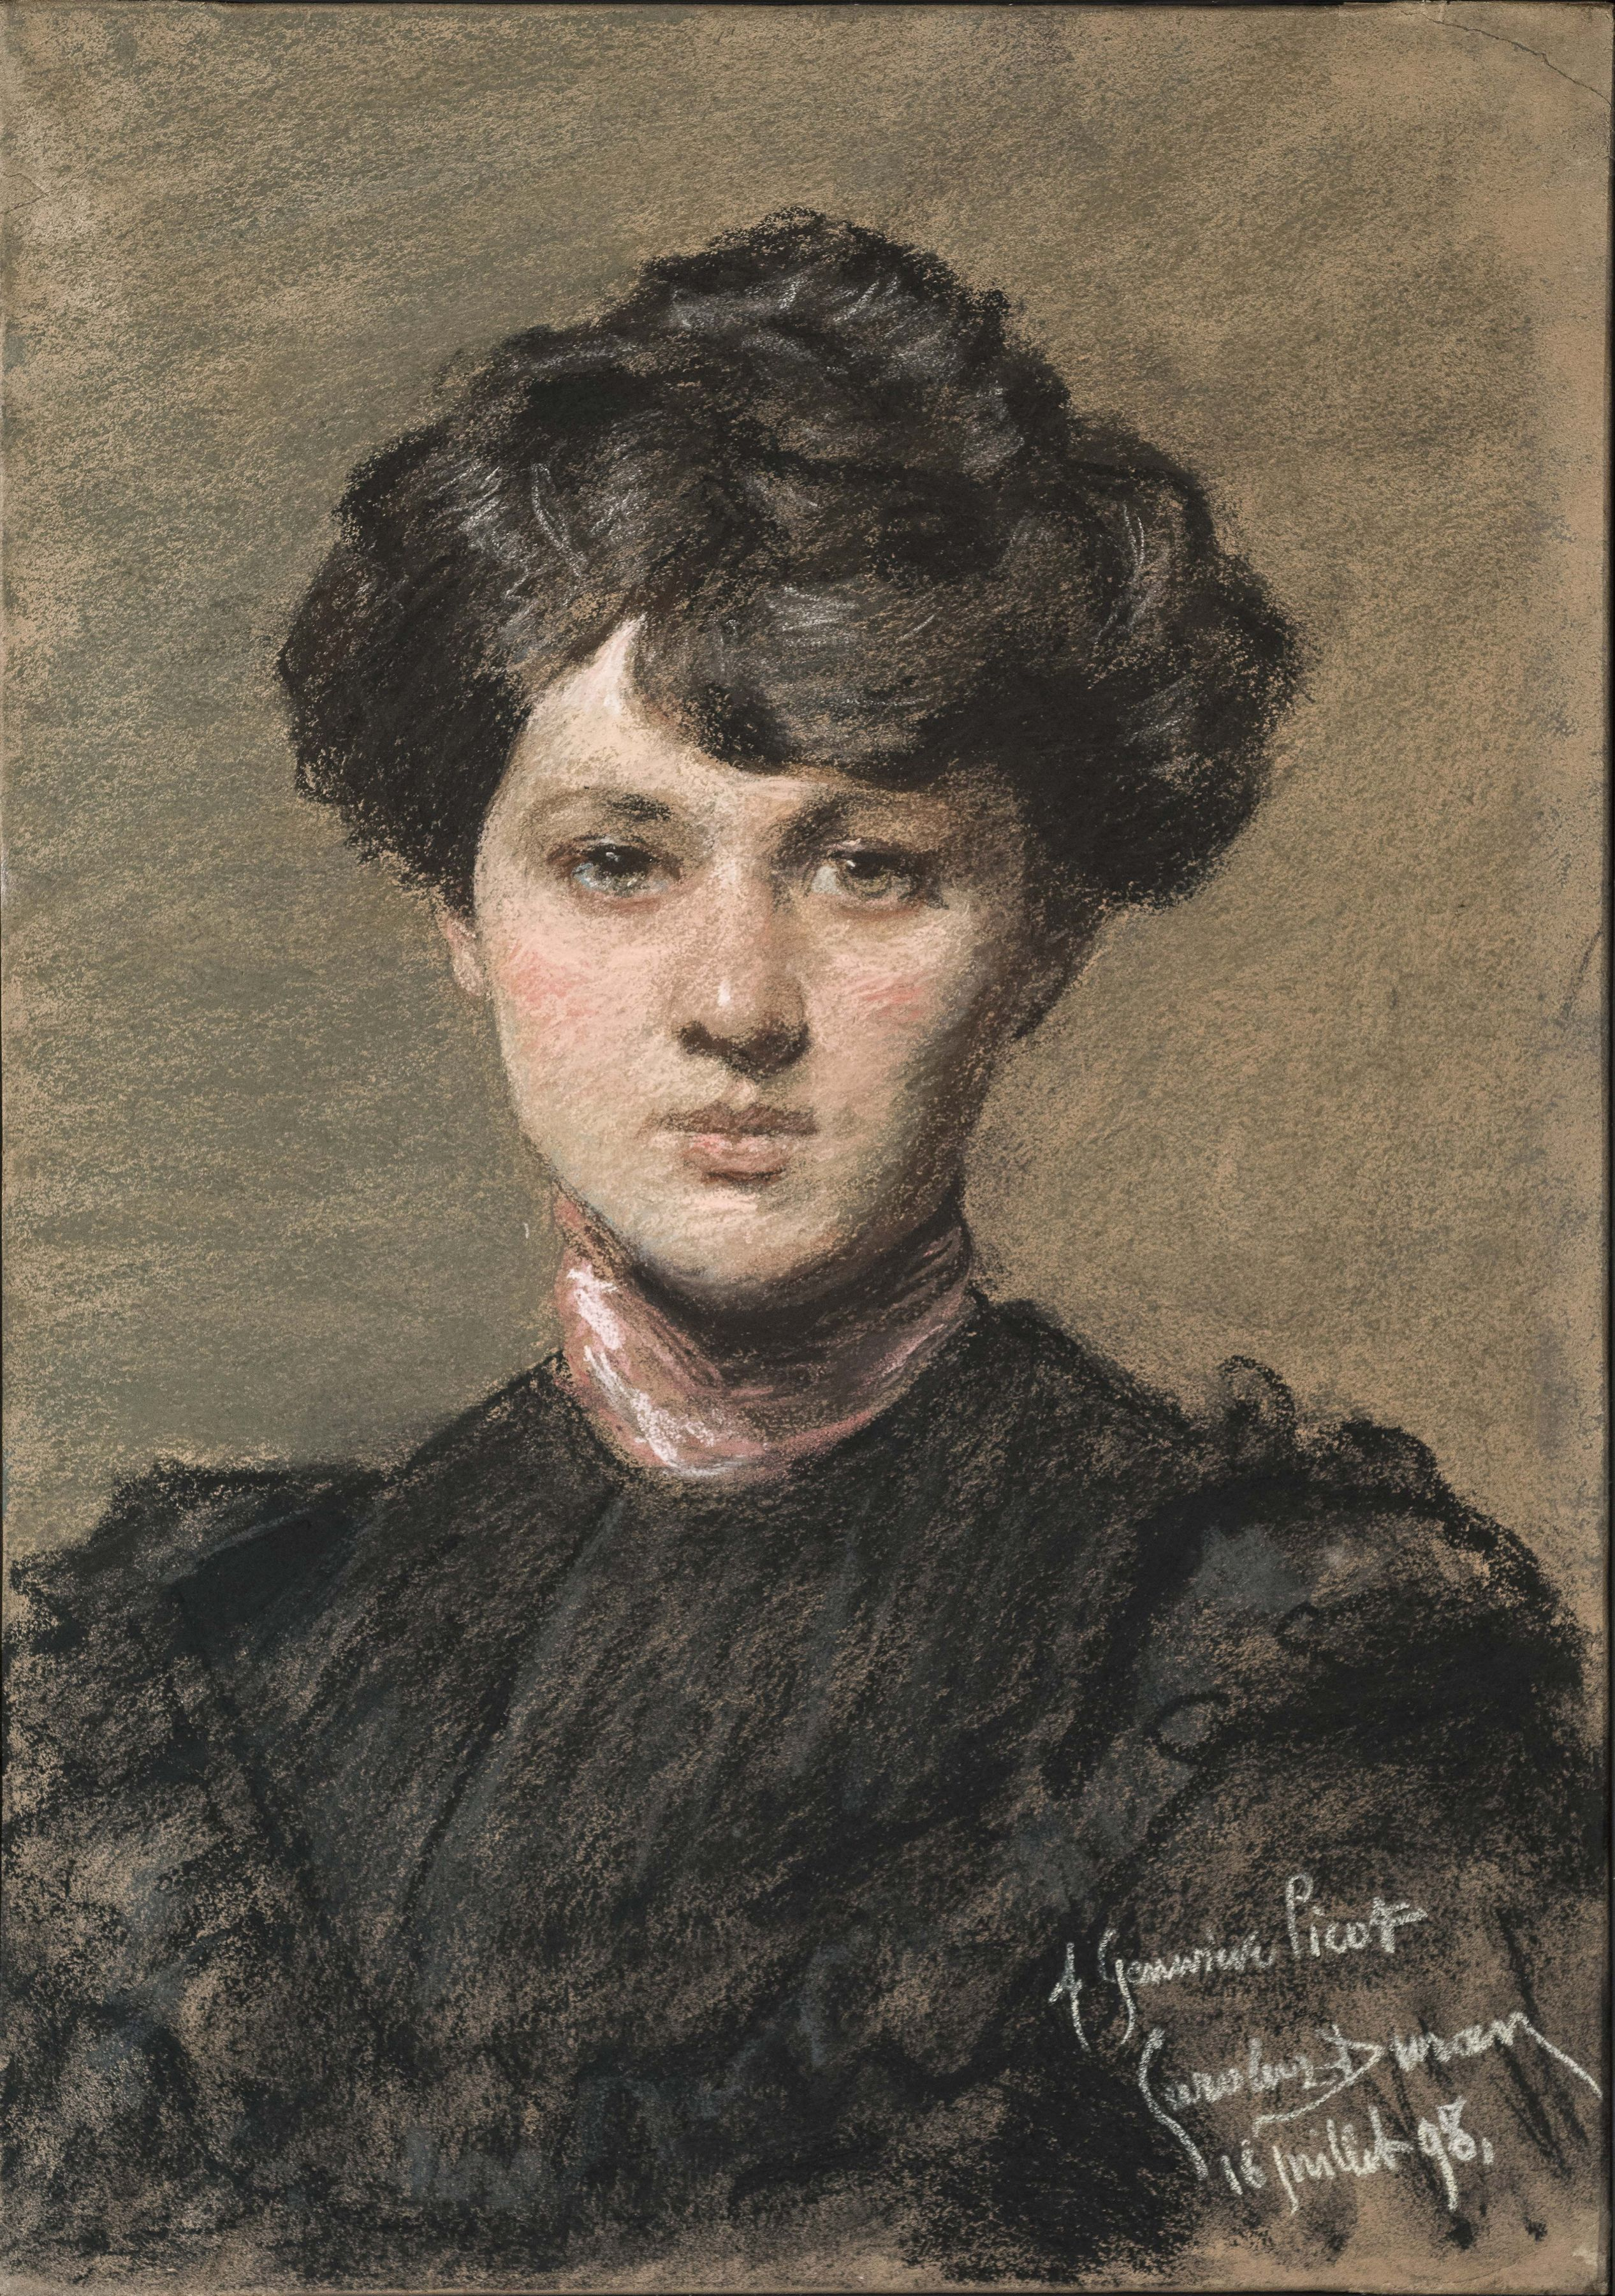 Carolus-Durand, Portrait of Genevieve Picot, 1898,   Pastel on paper 21 1/4 x 15 5/8 inches